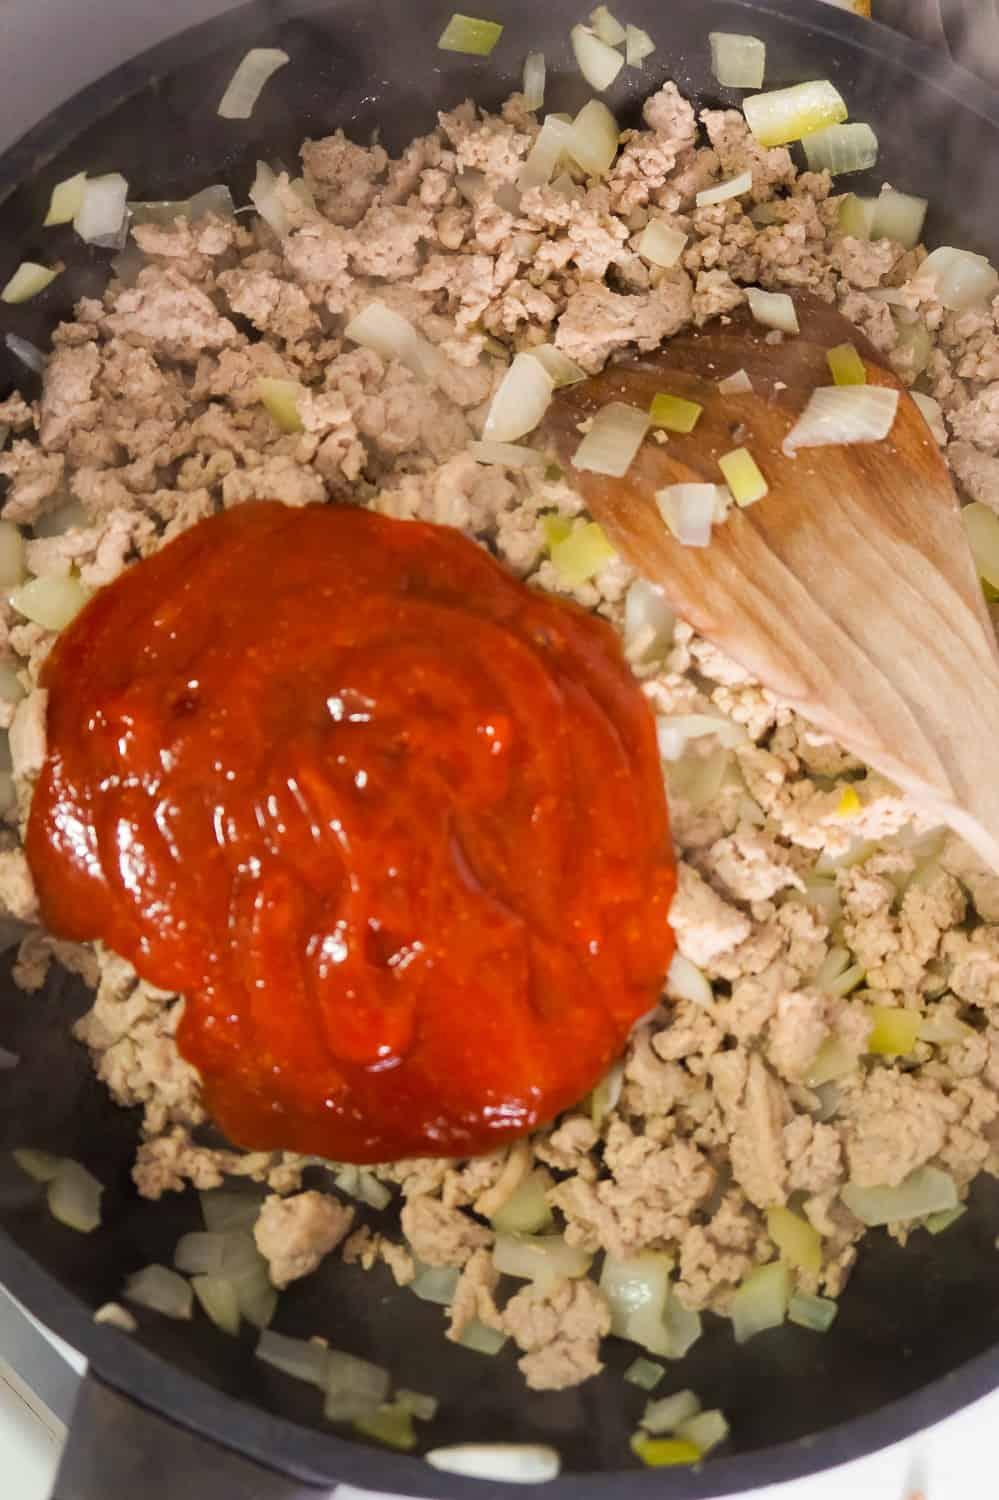 sloppy joe sauce on top of cooked ground turkey in a frying pan